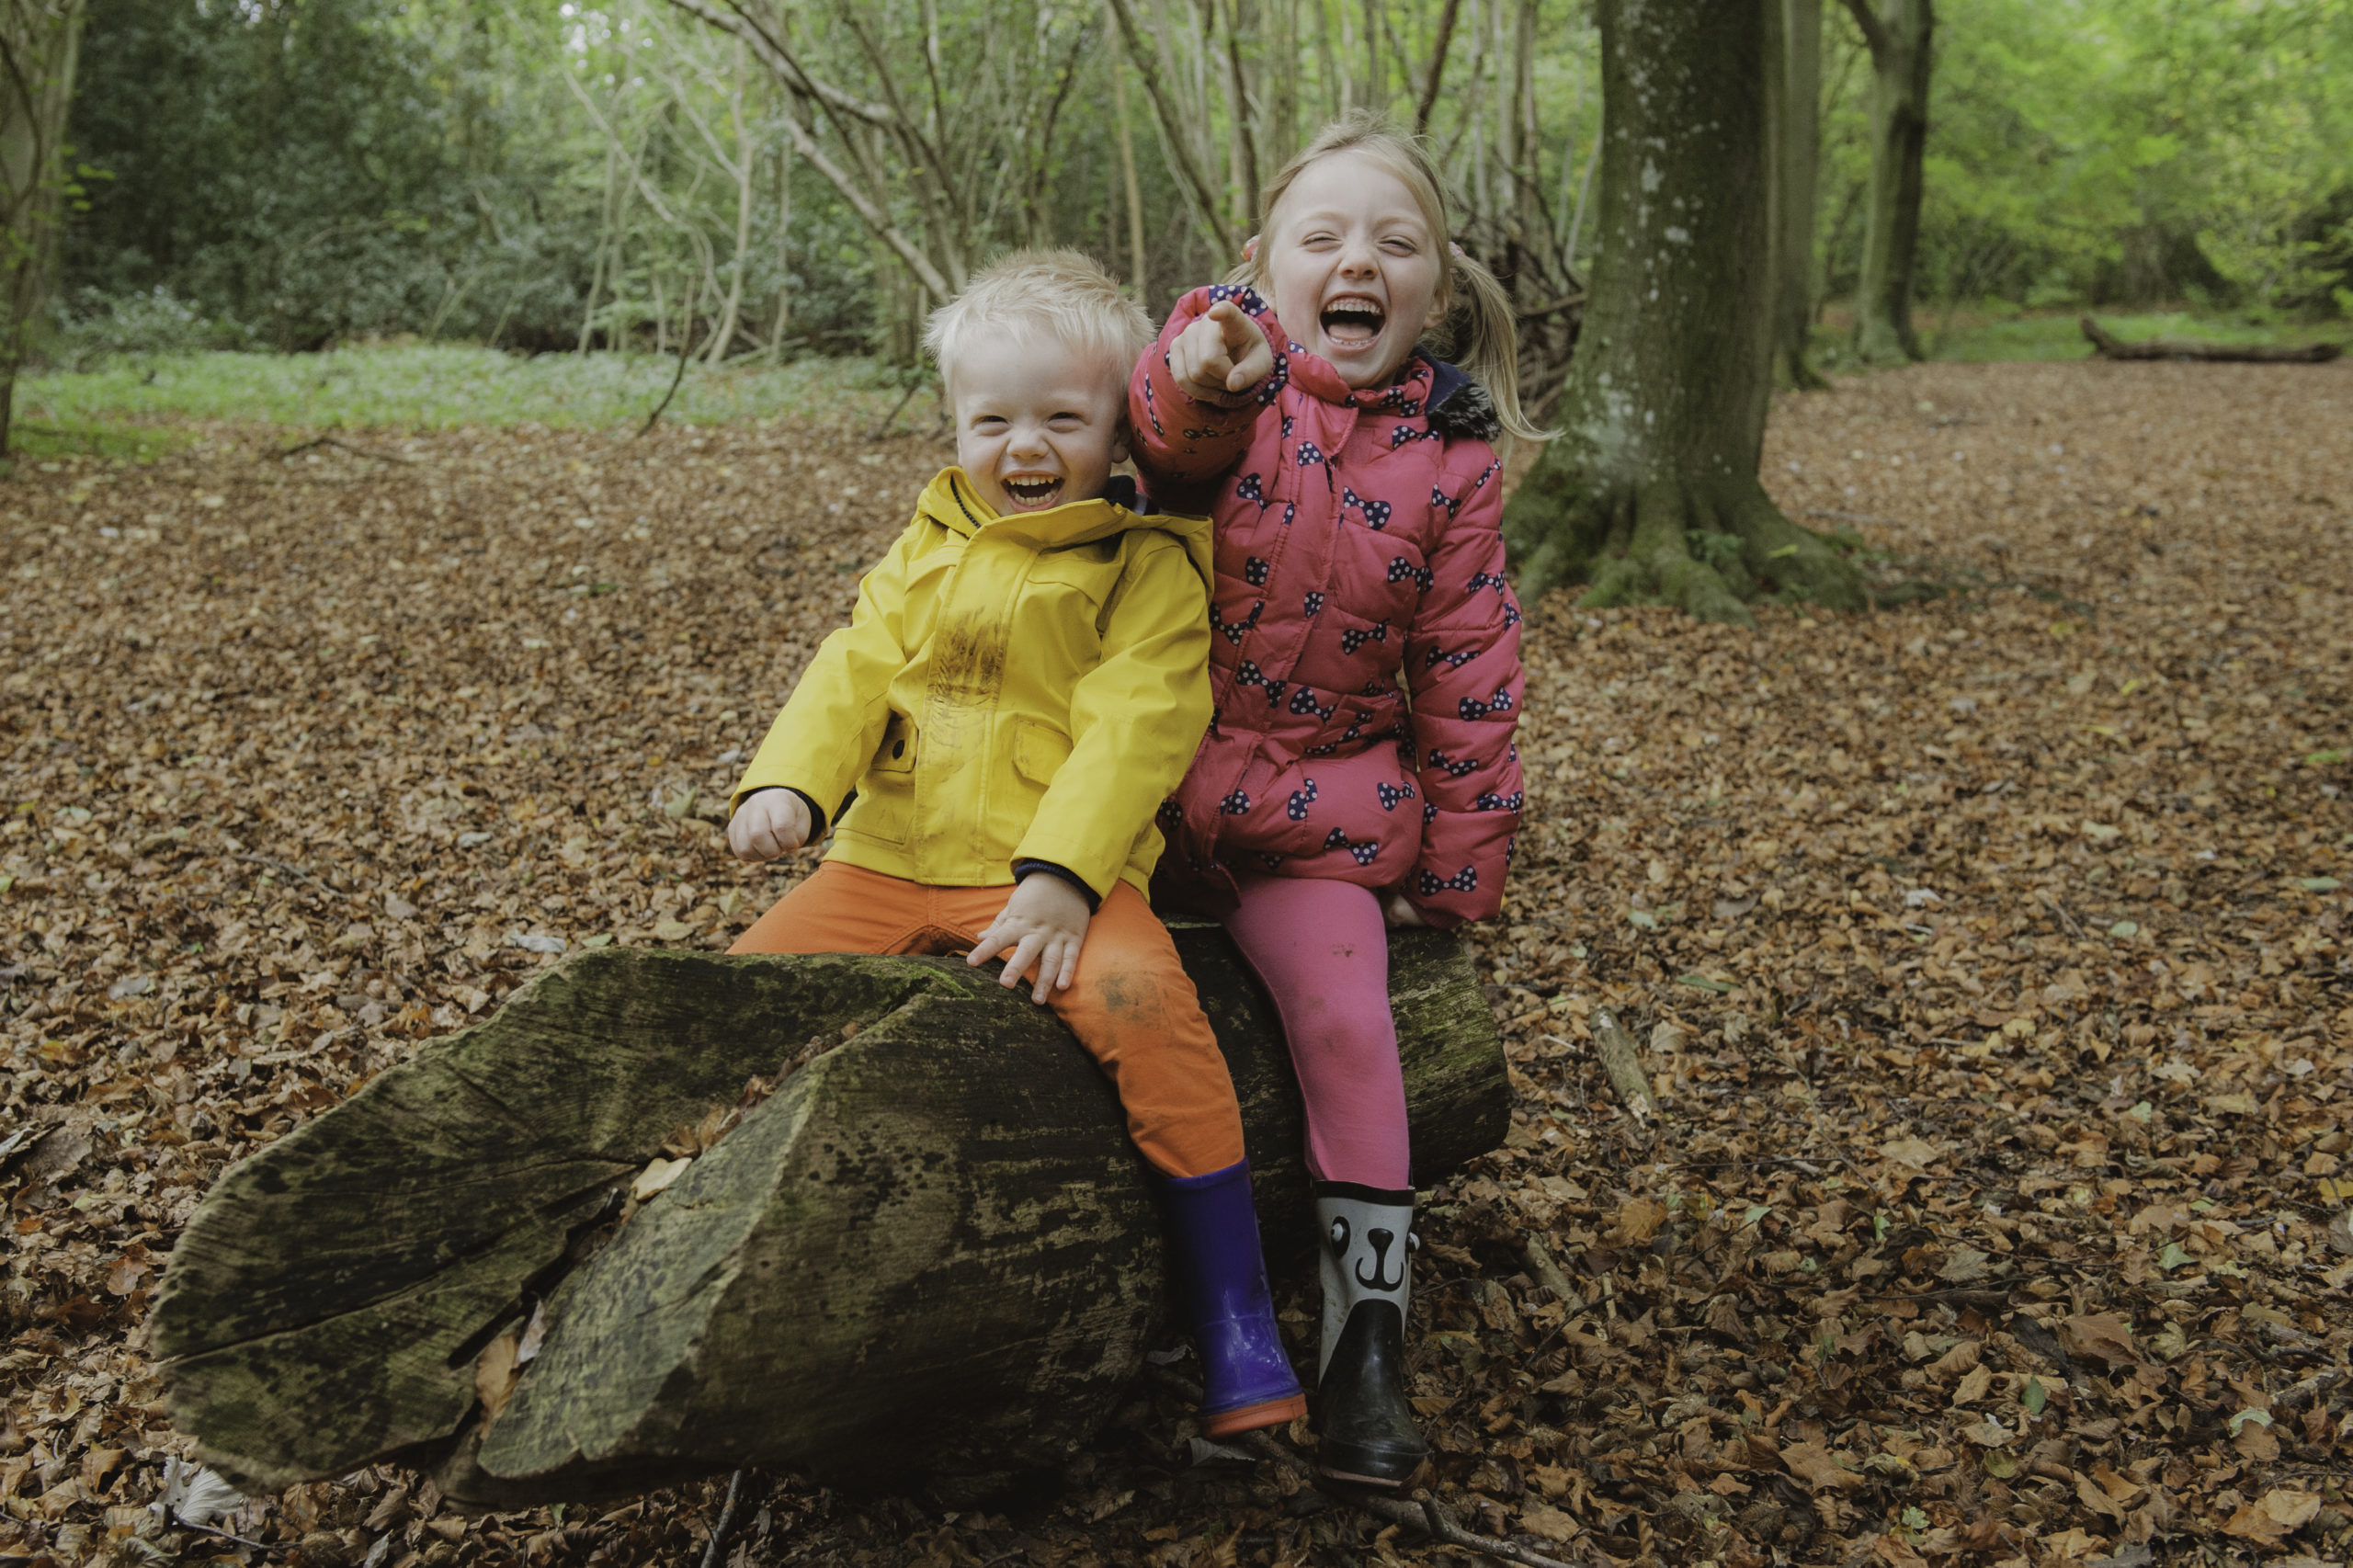 2 children giggling in a woodland